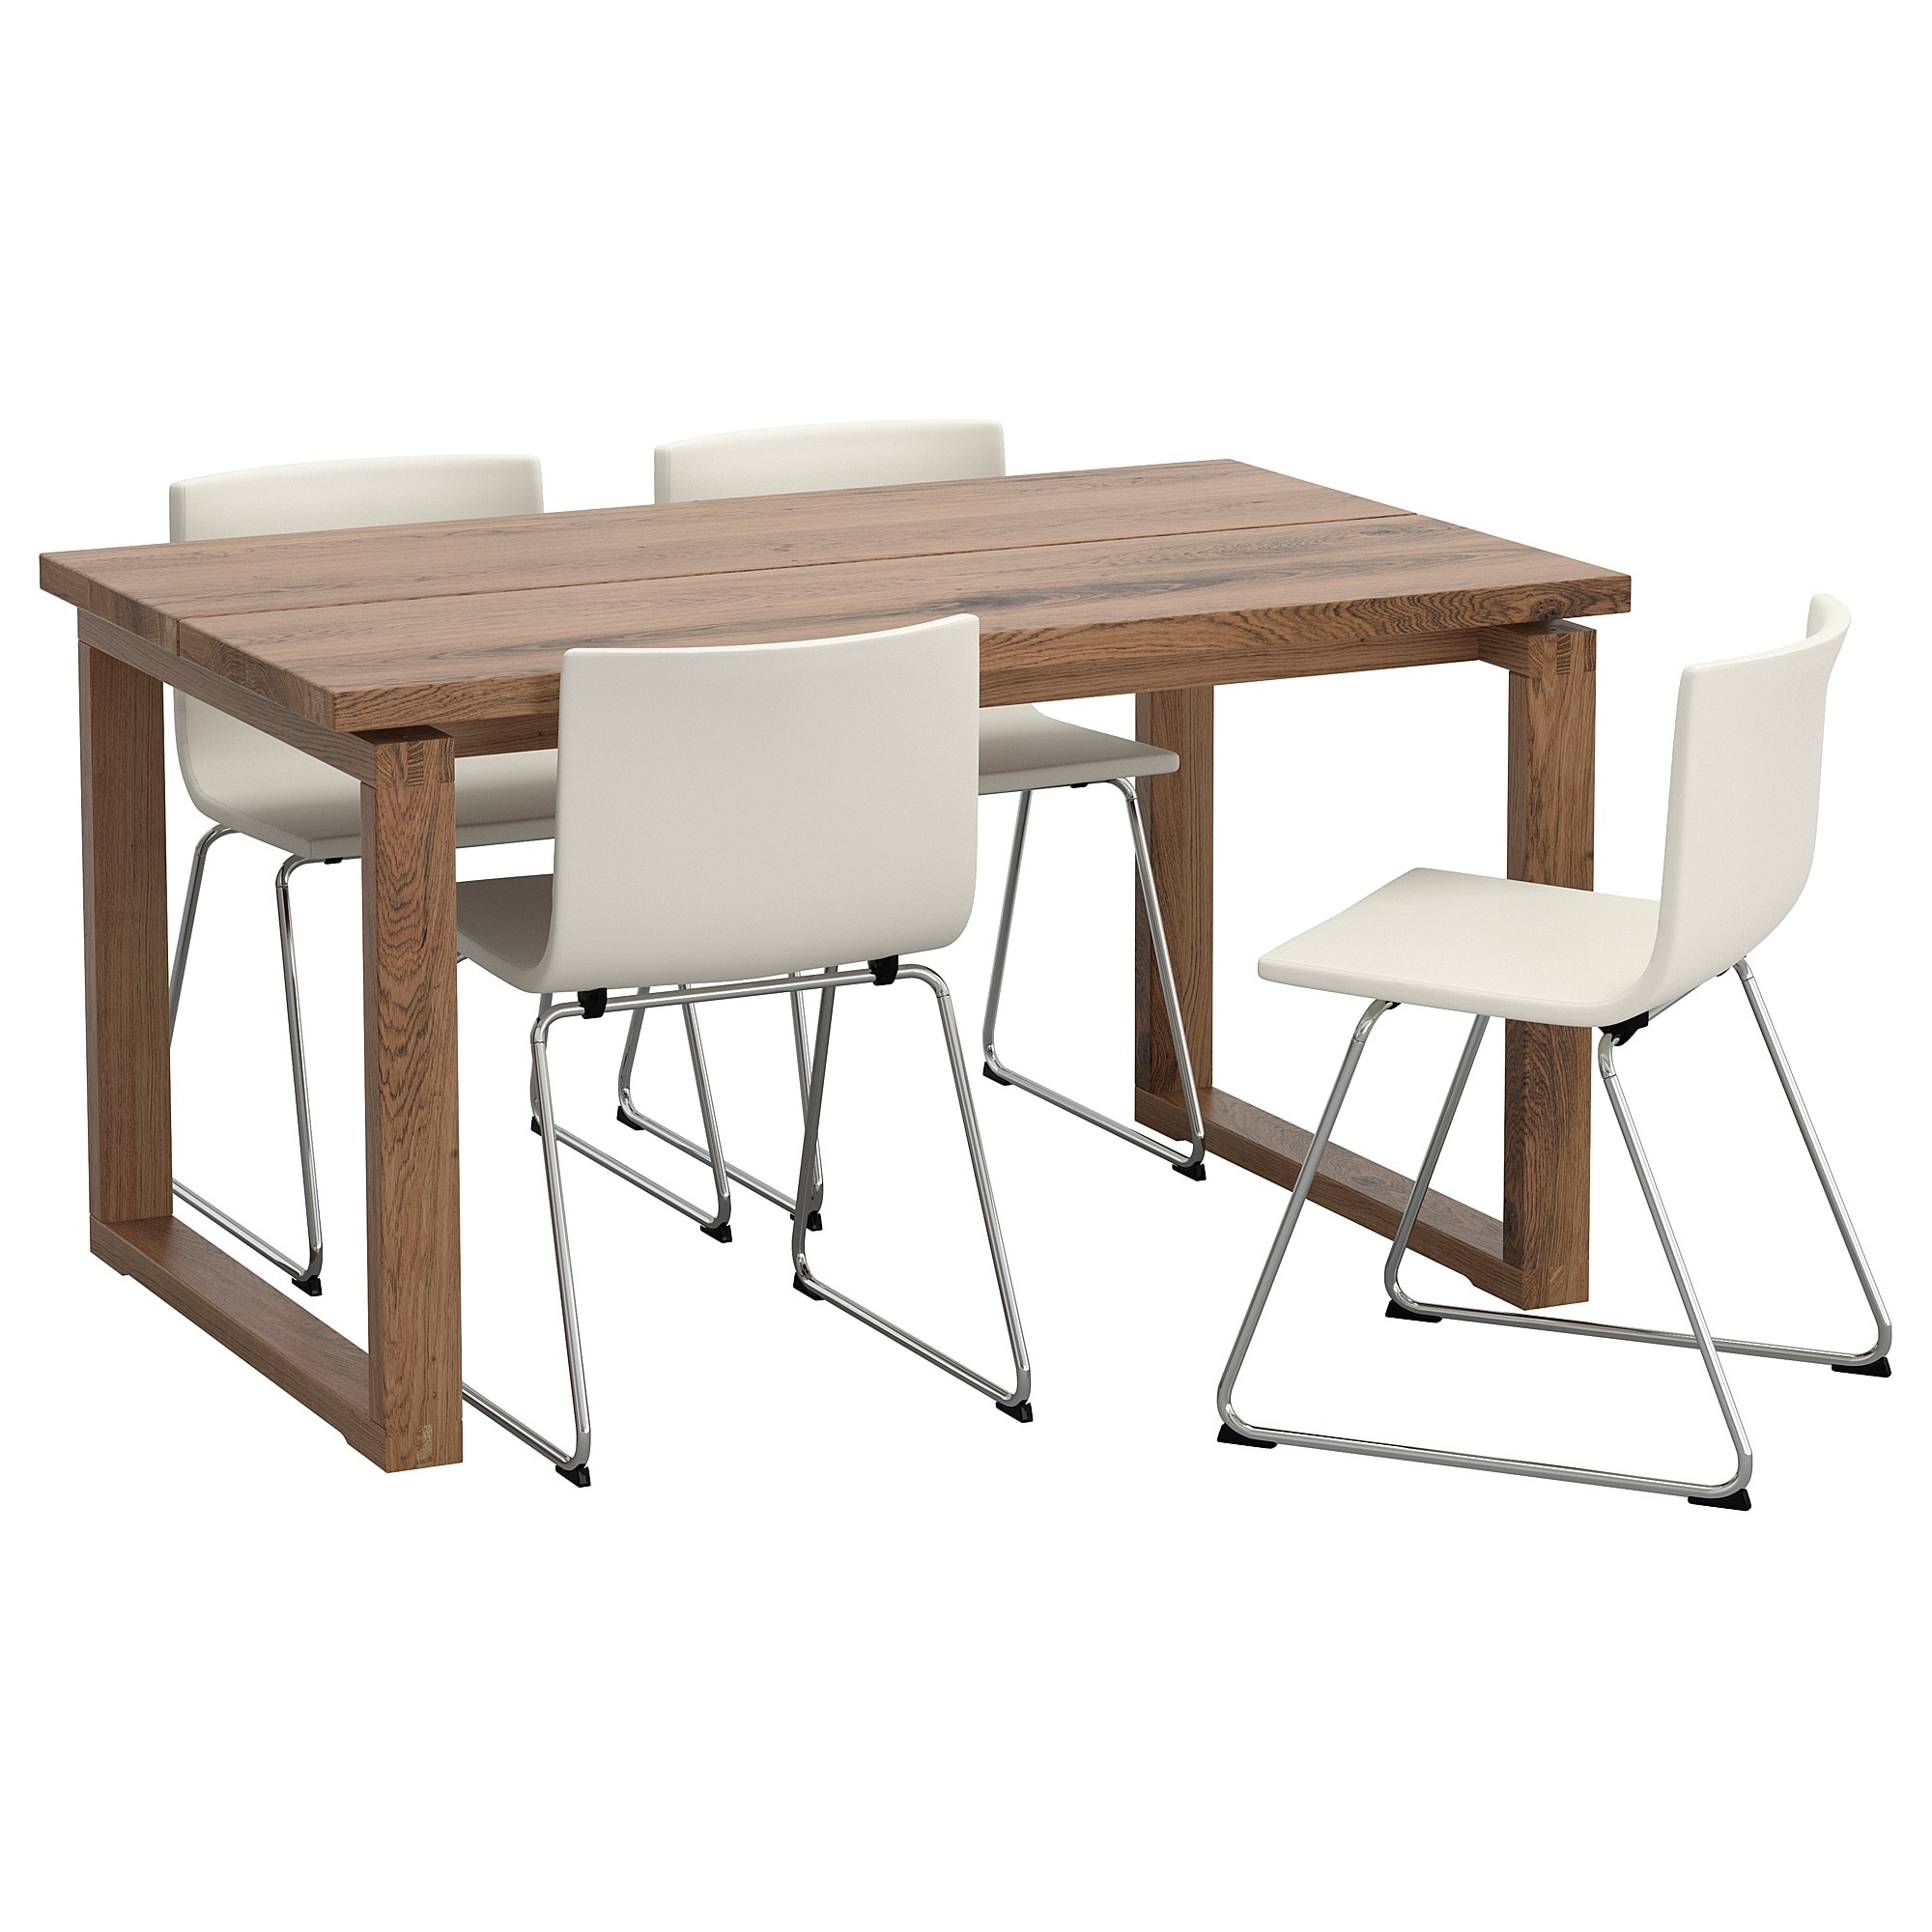 Ikea Throughout Compact Dining Tables (View 17 of 25)